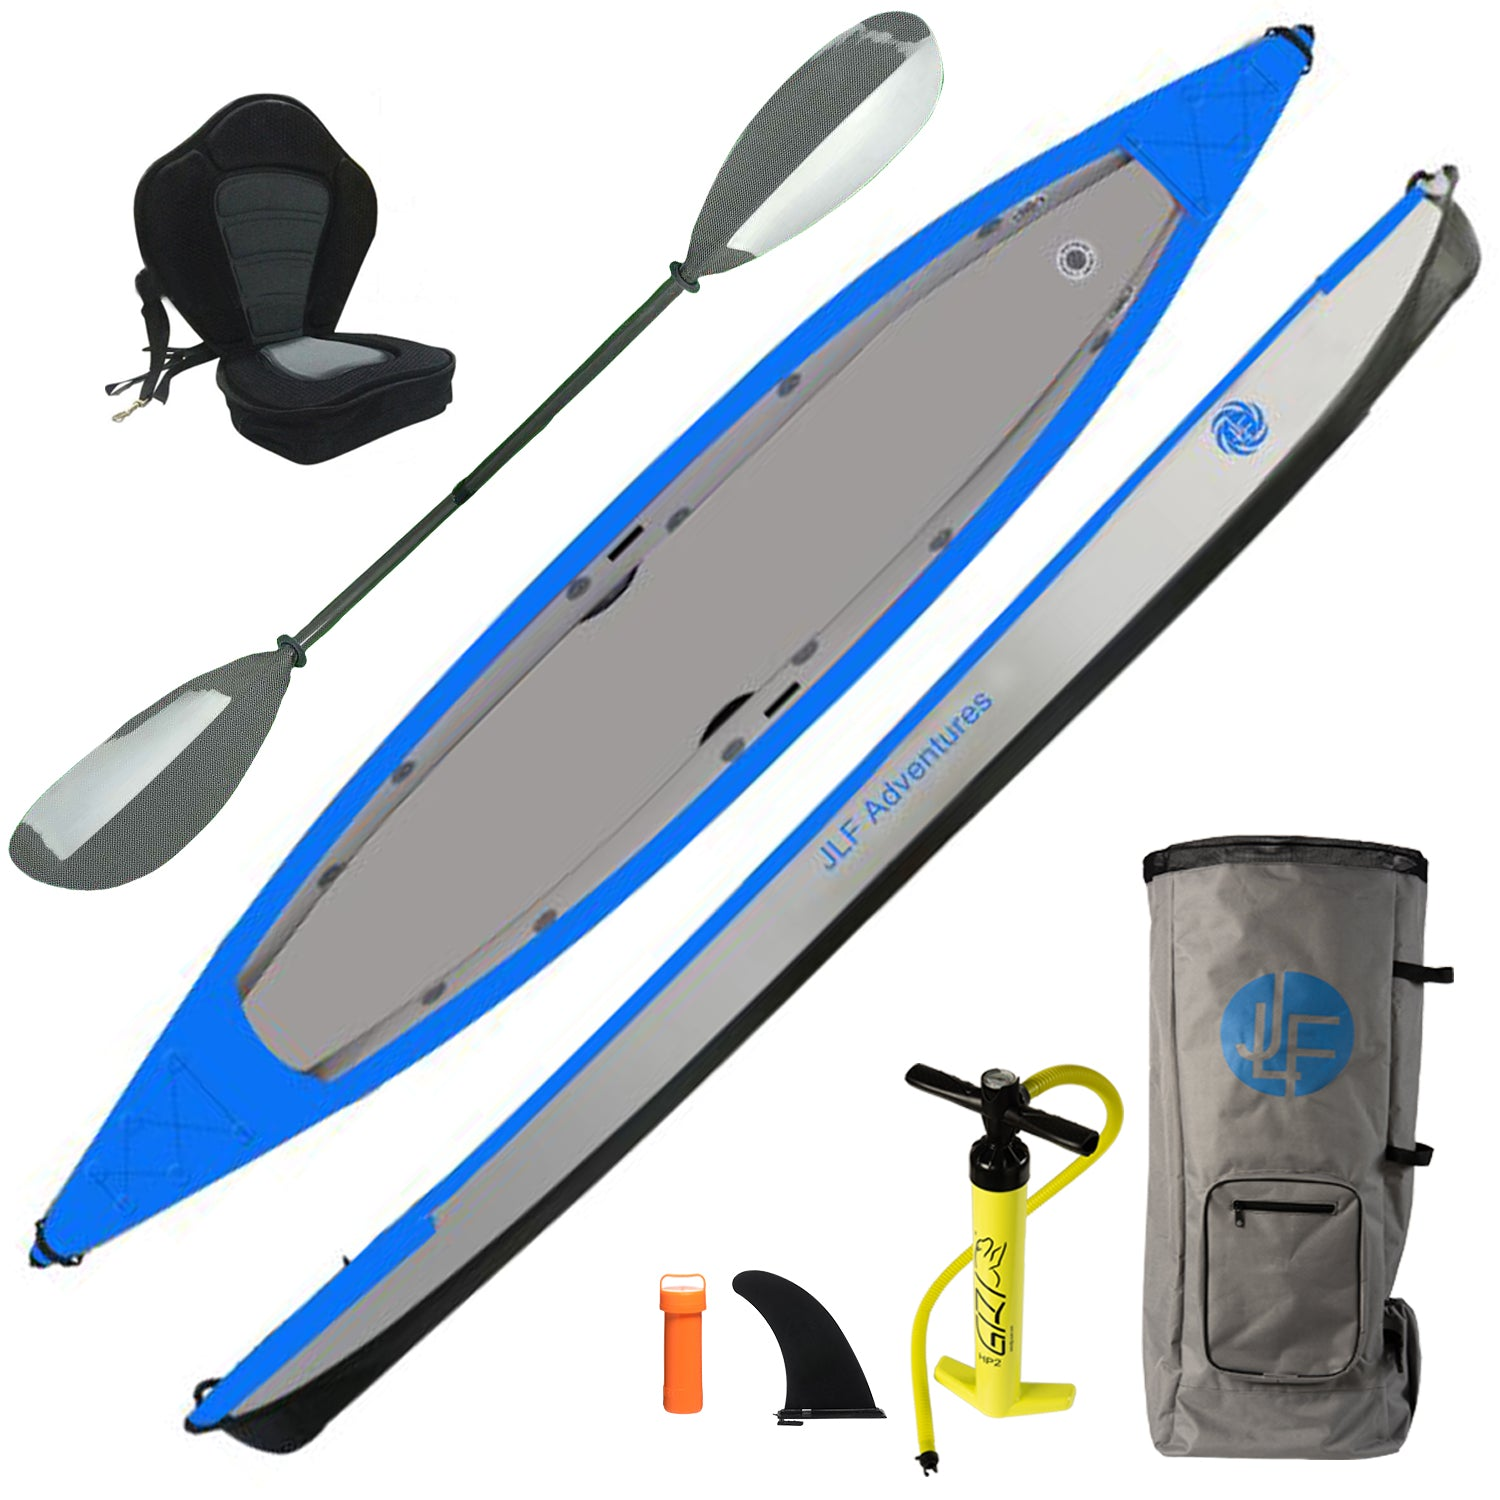 *NEW* JLF 12 Ft + 9 In Inflatable Sit-Inside Kayak Set | Includes: Kayak, Carbon Fiber Paddle, Detachable Padded Kayak Seat, Dual Action Hand Pump, Backpack